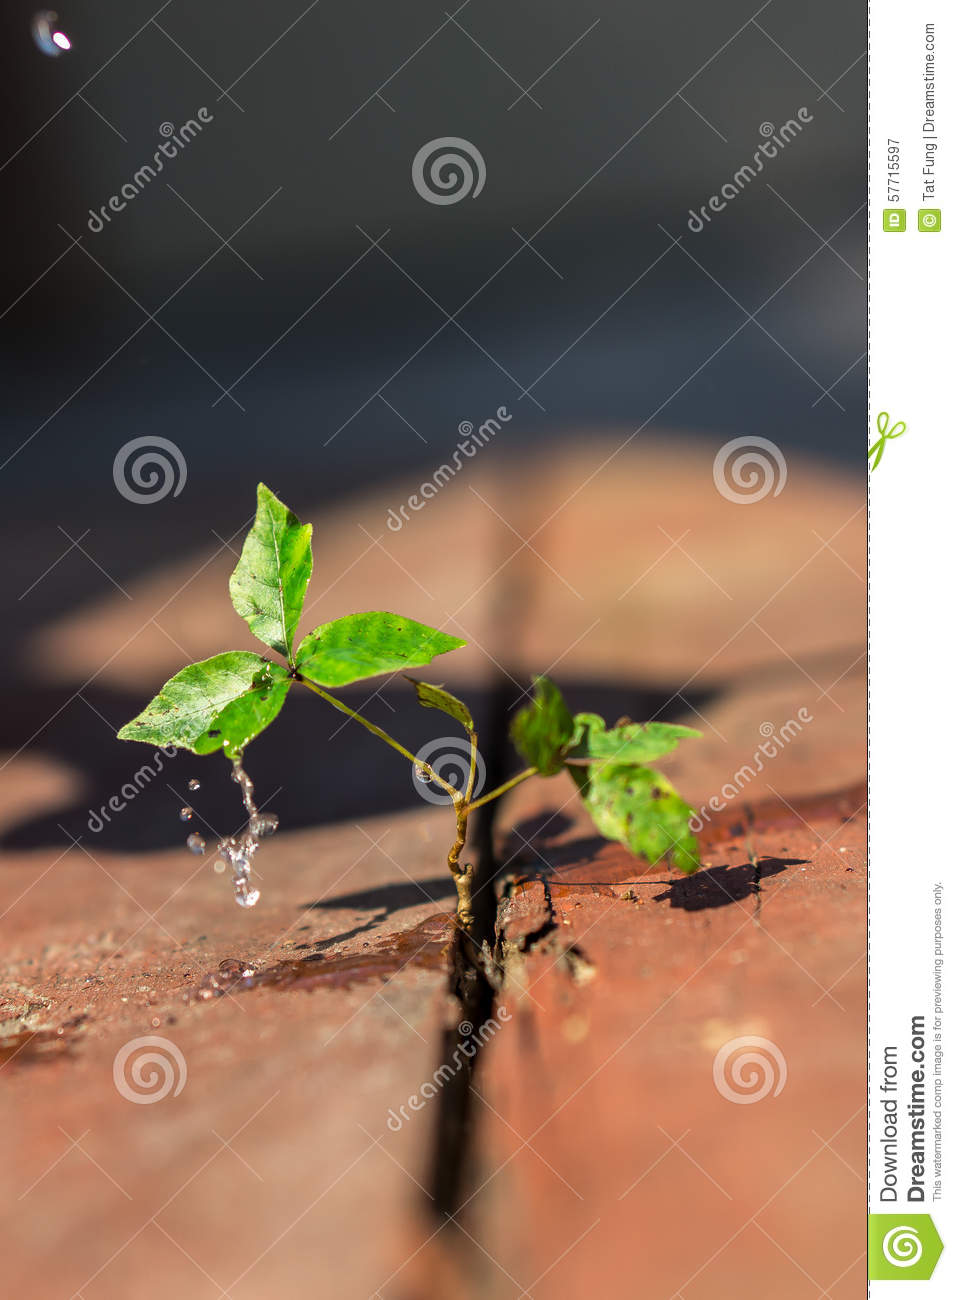 New life growing on a old wood floor stock photo image for Green floor plant